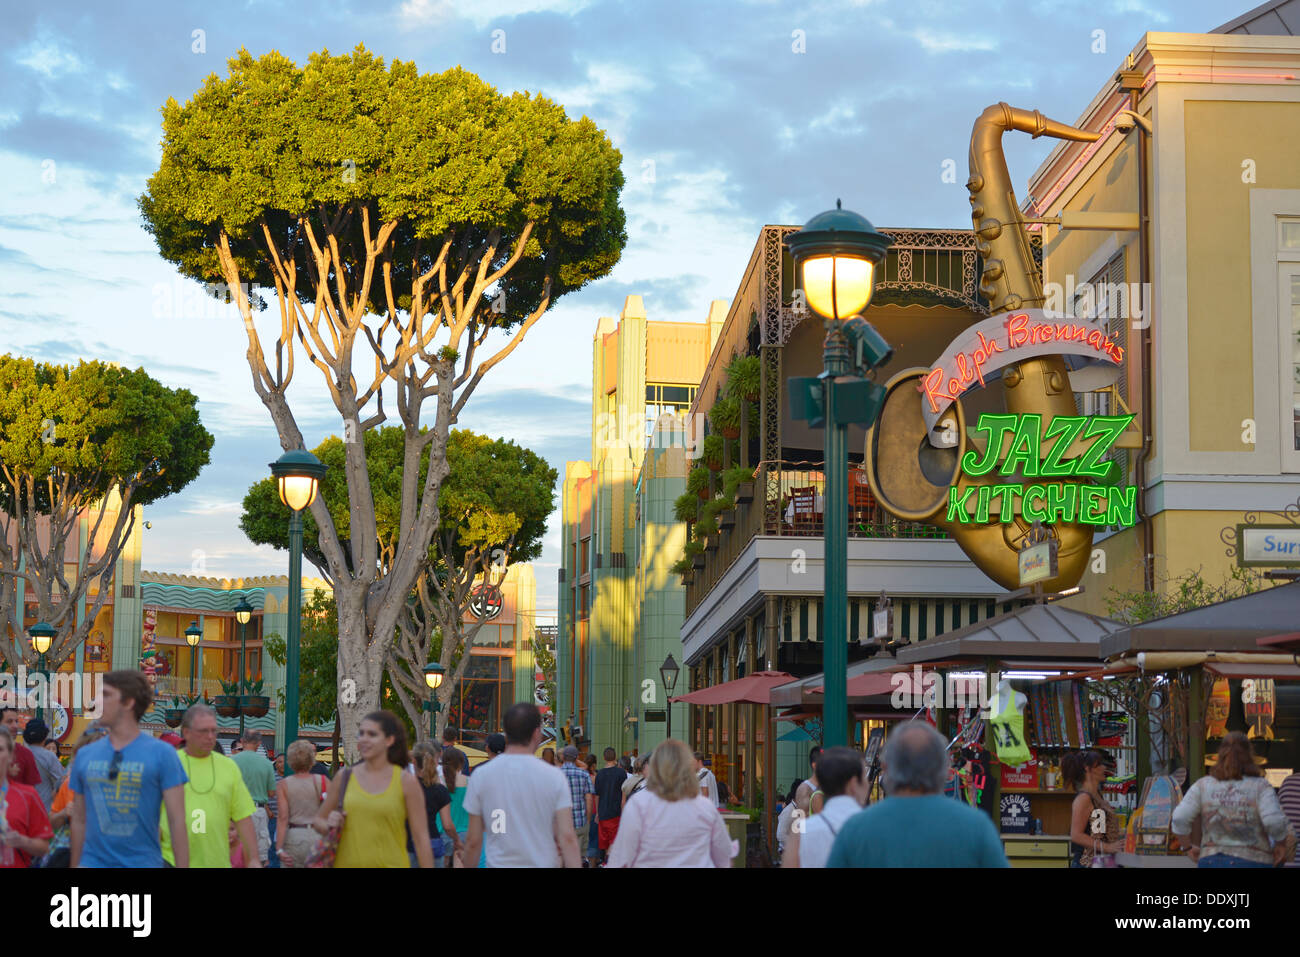 Disneyland, Downtown Disney, Restaurant Jazz Kitchen, and Shops ...